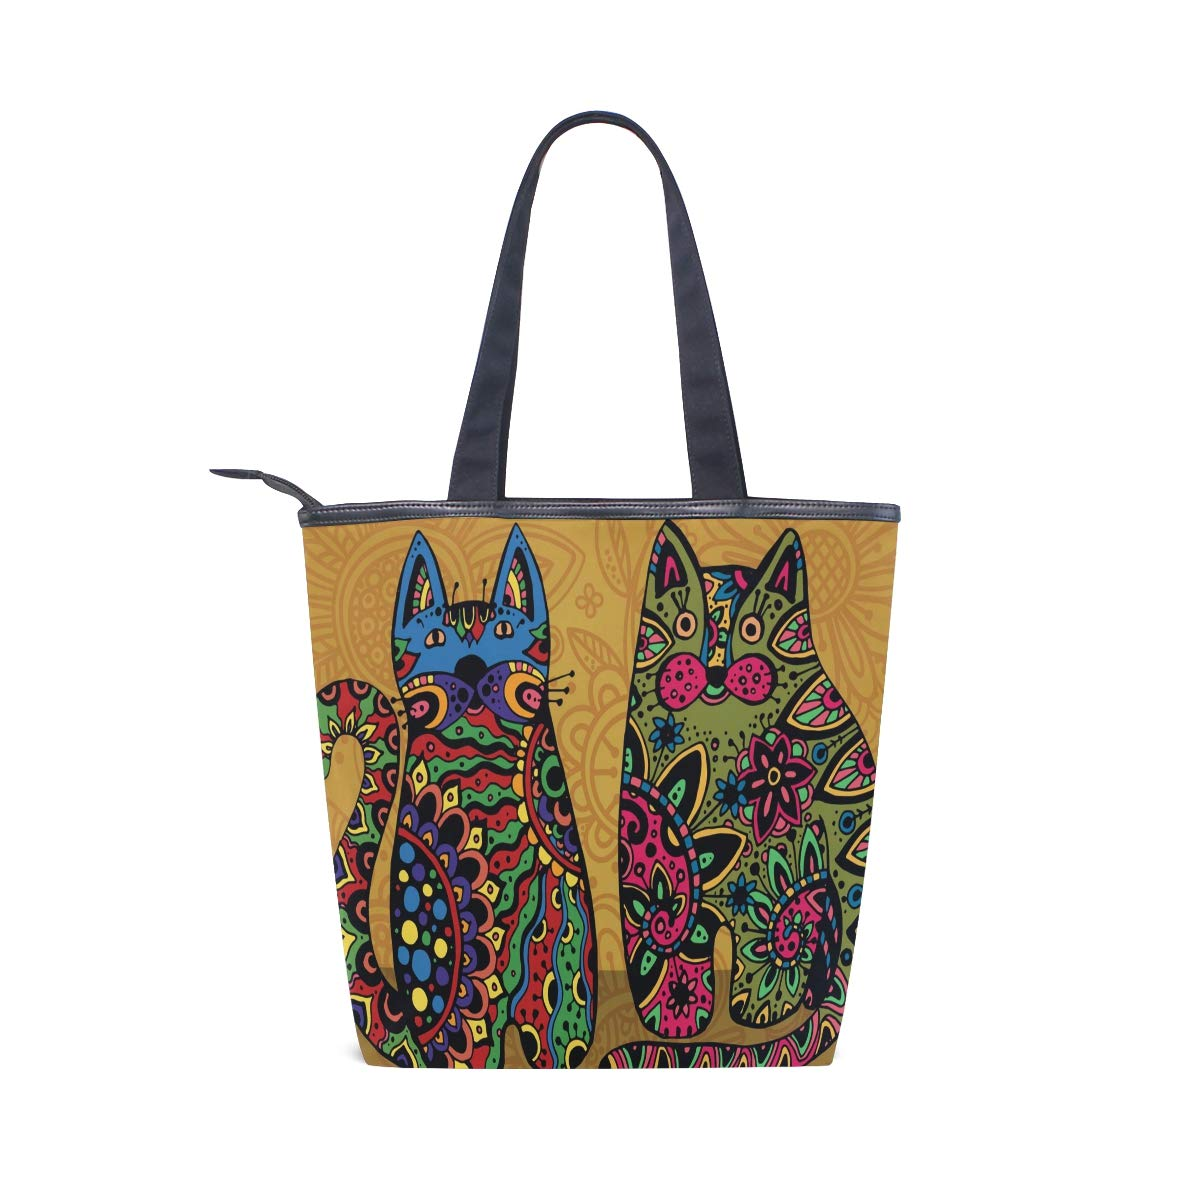 c8c19b1b5c5c1e Women Canvas Handbags Casual Shoulder Bags Tote Fashion Large Capacity Bags,  Vector Funny Cats With Floral Ornament Personality Printing Shopper Handbag  ...